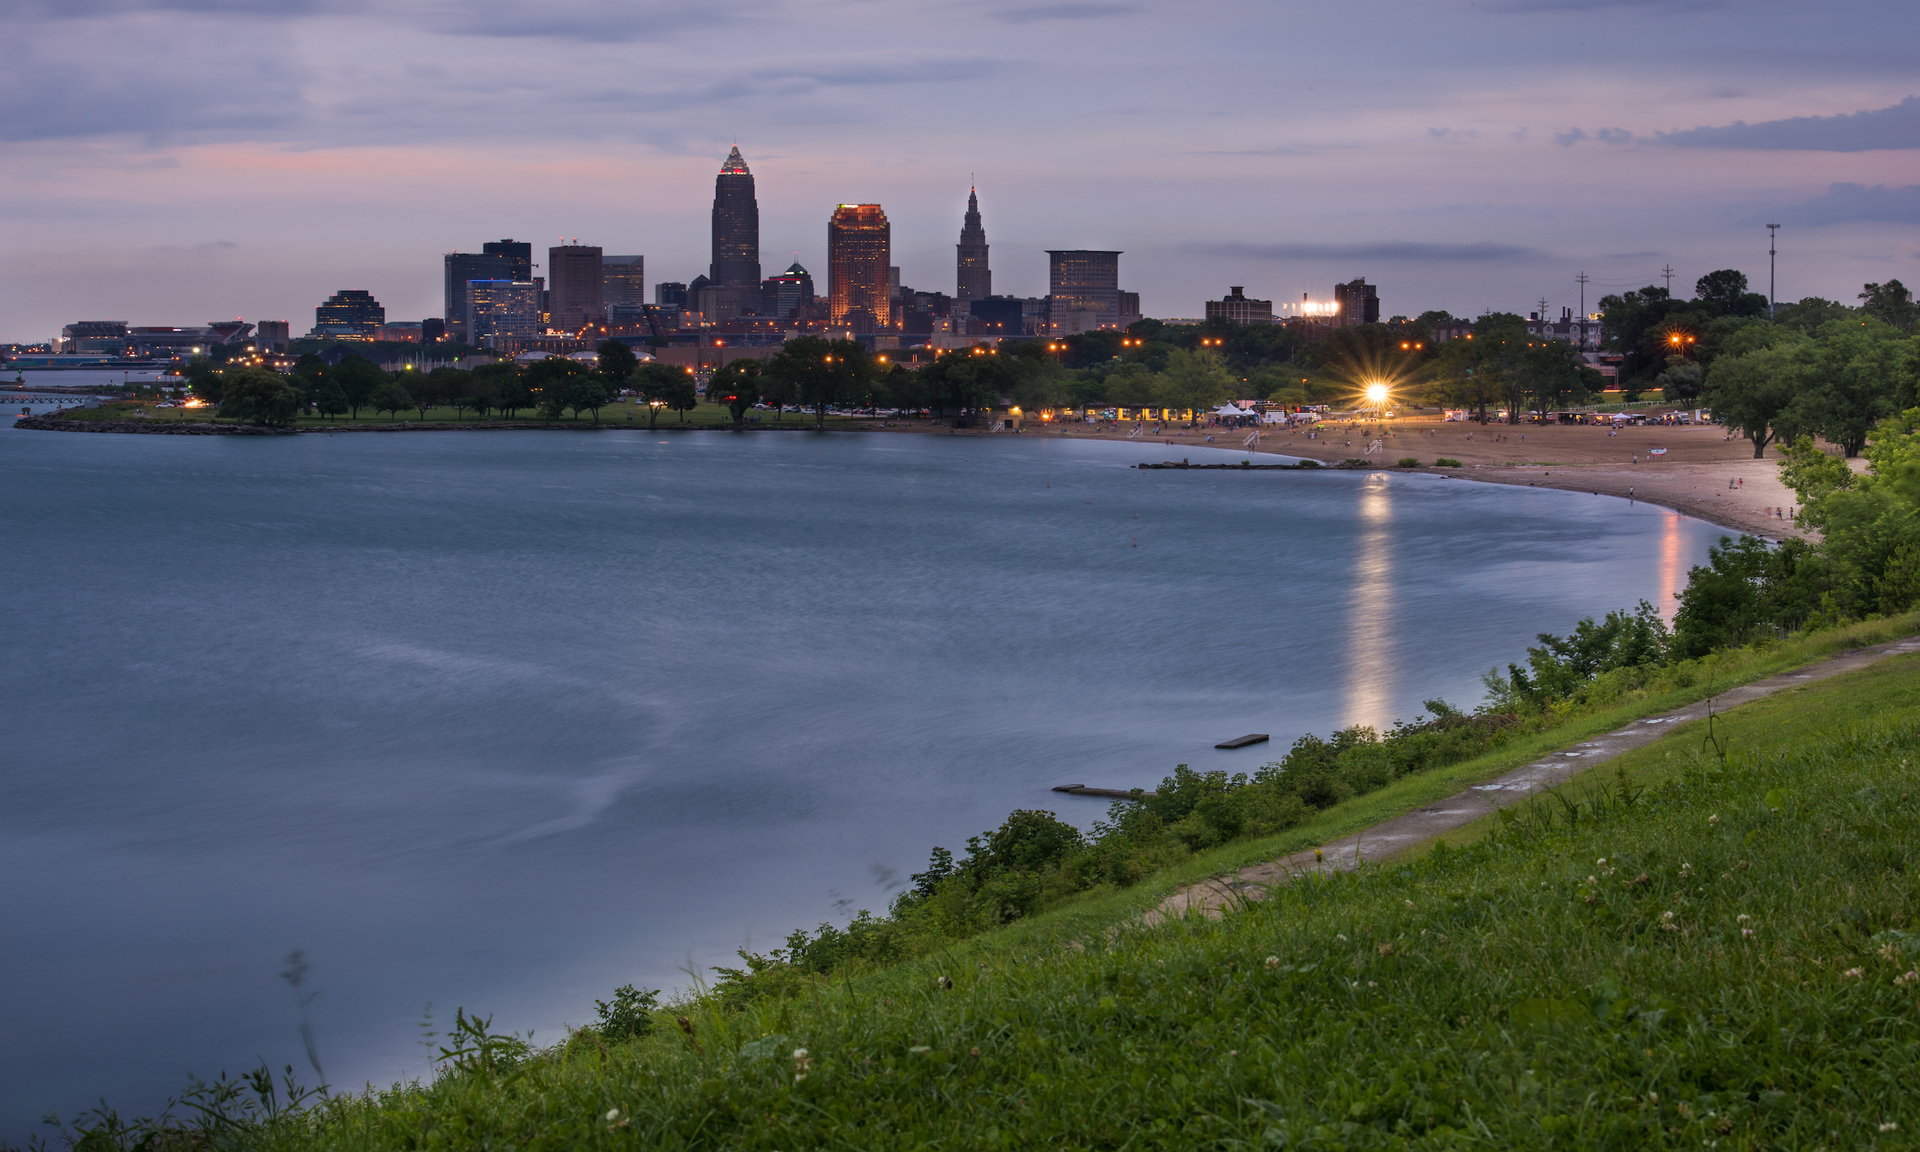 Cleveland Metroparks Tips for a Safe Fourth of July Holiday